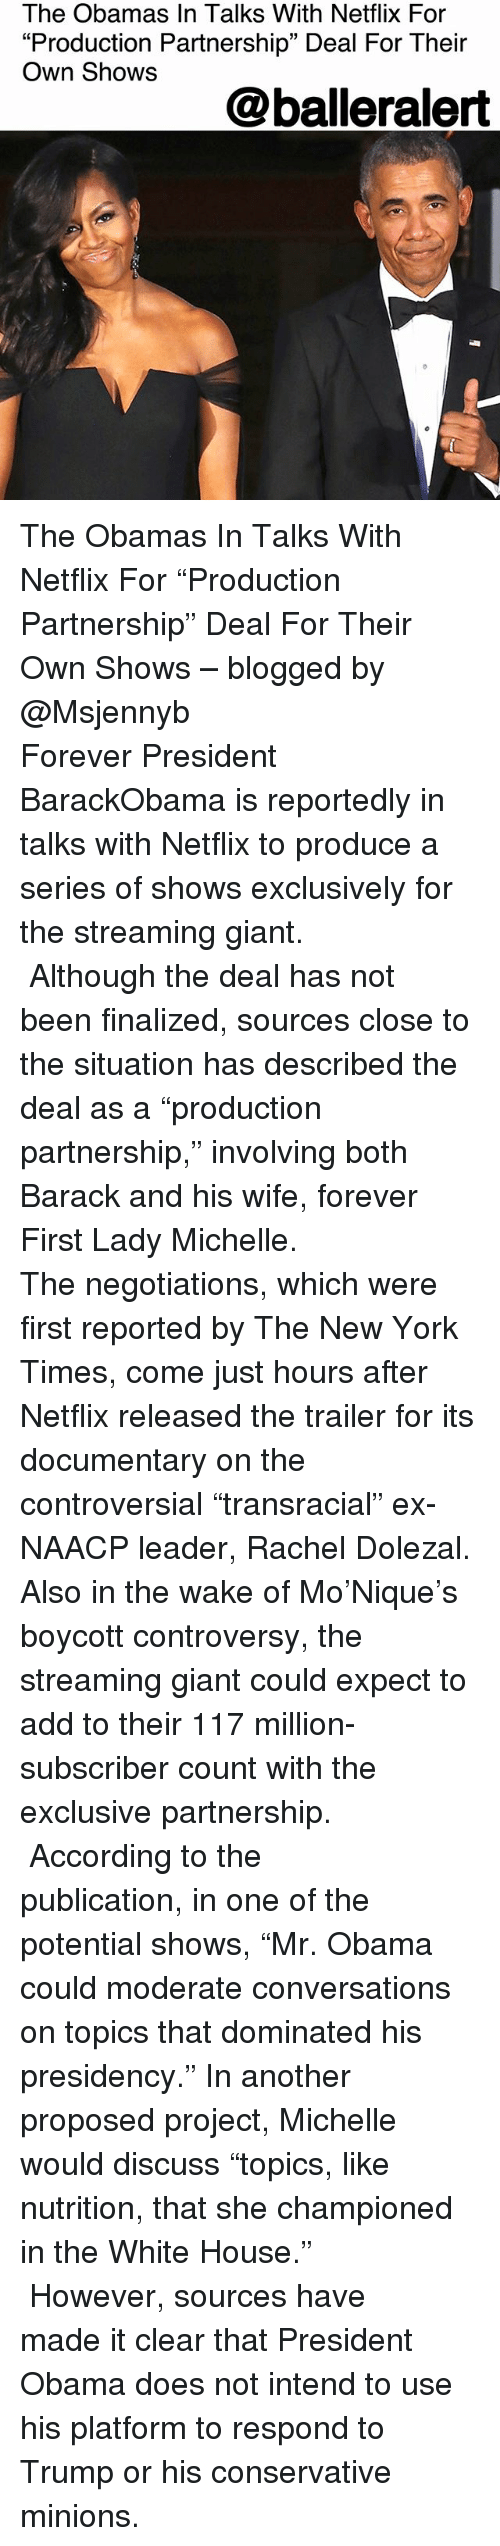 """Memes, Netflix, and New York: The Obamas In Talks With Netflix For  """"Production Partnership"""" Deal For Their  Own Shows  @balleralert The Obamas In Talks With Netflix For """"Production Partnership"""" Deal For Their Own Shows – blogged by @Msjennyb ⠀⠀⠀⠀⠀⠀⠀⠀⠀ ⠀⠀⠀⠀⠀⠀⠀⠀⠀ Forever President BarackObama is reportedly in talks with Netflix to produce a series of shows exclusively for the streaming giant. ⠀⠀⠀⠀⠀⠀⠀⠀⠀ ⠀⠀⠀⠀⠀⠀⠀⠀⠀ Although the deal has not been finalized, sources close to the situation has described the deal as a """"production partnership,"""" involving both Barack and his wife, forever First Lady Michelle. ⠀⠀⠀⠀⠀⠀⠀⠀⠀ ⠀⠀⠀⠀⠀⠀⠀⠀⠀ The negotiations, which were first reported by The New York Times, come just hours after Netflix released the trailer for its documentary on the controversial """"transracial"""" ex-NAACP leader, Rachel Dolezal. Also in the wake of Mo'Nique's boycott controversy, the streaming giant could expect to add to their 117 million-subscriber count with the exclusive partnership. ⠀⠀⠀⠀⠀⠀⠀⠀⠀ ⠀⠀⠀⠀⠀⠀⠀⠀⠀ According to the publication, in one of the potential shows, """"Mr. Obama could moderate conversations on topics that dominated his presidency."""" In another proposed project, Michelle would discuss """"topics, like nutrition, that she championed in the White House."""" ⠀⠀⠀⠀⠀⠀⠀⠀⠀ ⠀⠀⠀⠀⠀⠀⠀⠀⠀ However, sources have made it clear that President Obama does not intend to use his platform to respond to Trump or his conservative minions."""